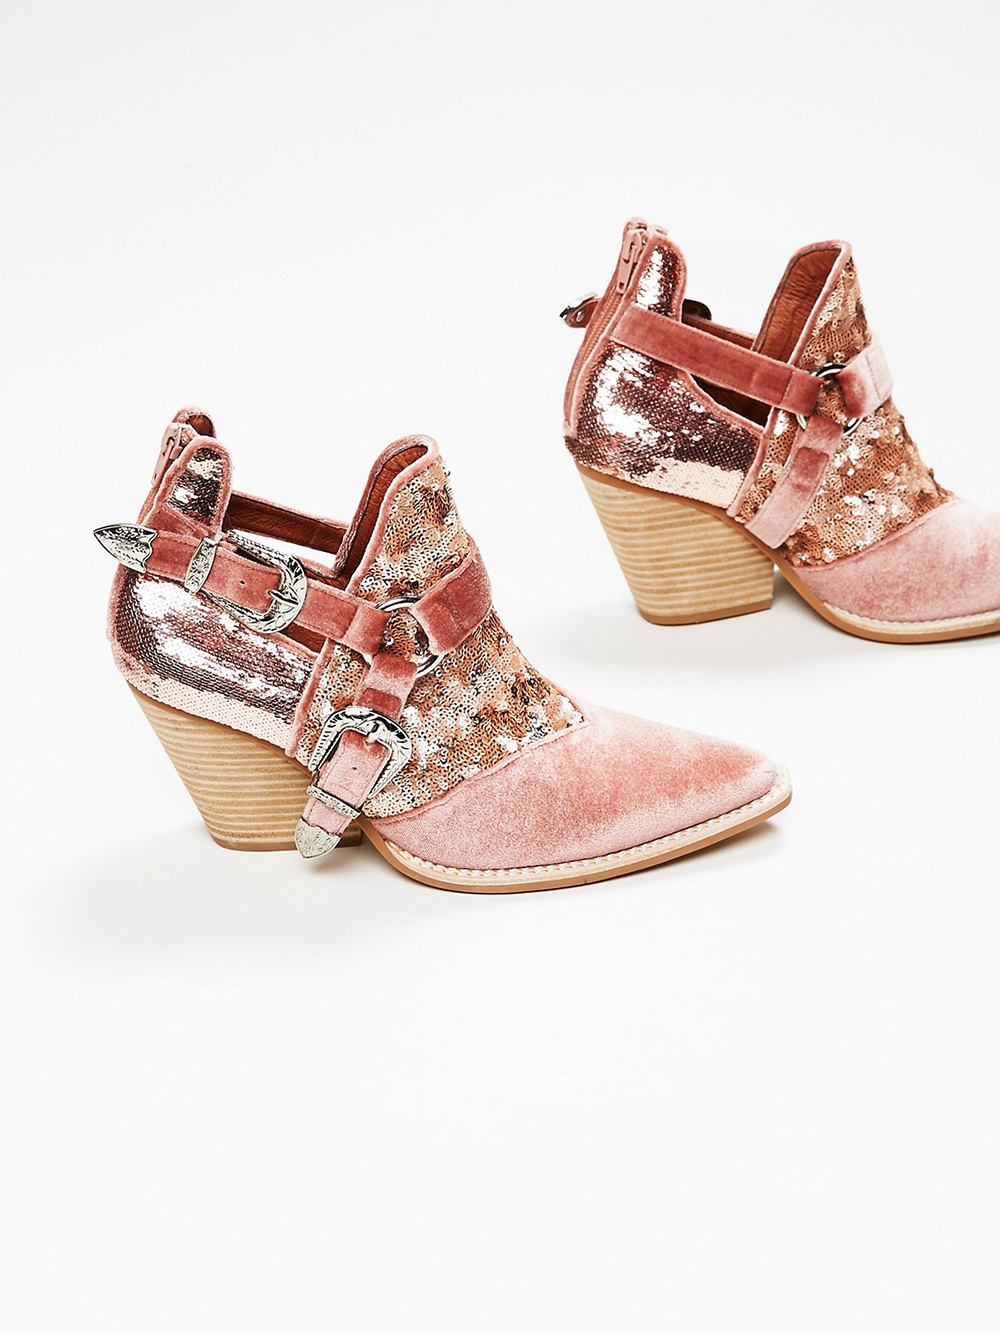 Jeffrey Campbell x Free People Icon Western Boot | Valentine's Day Gift Guide